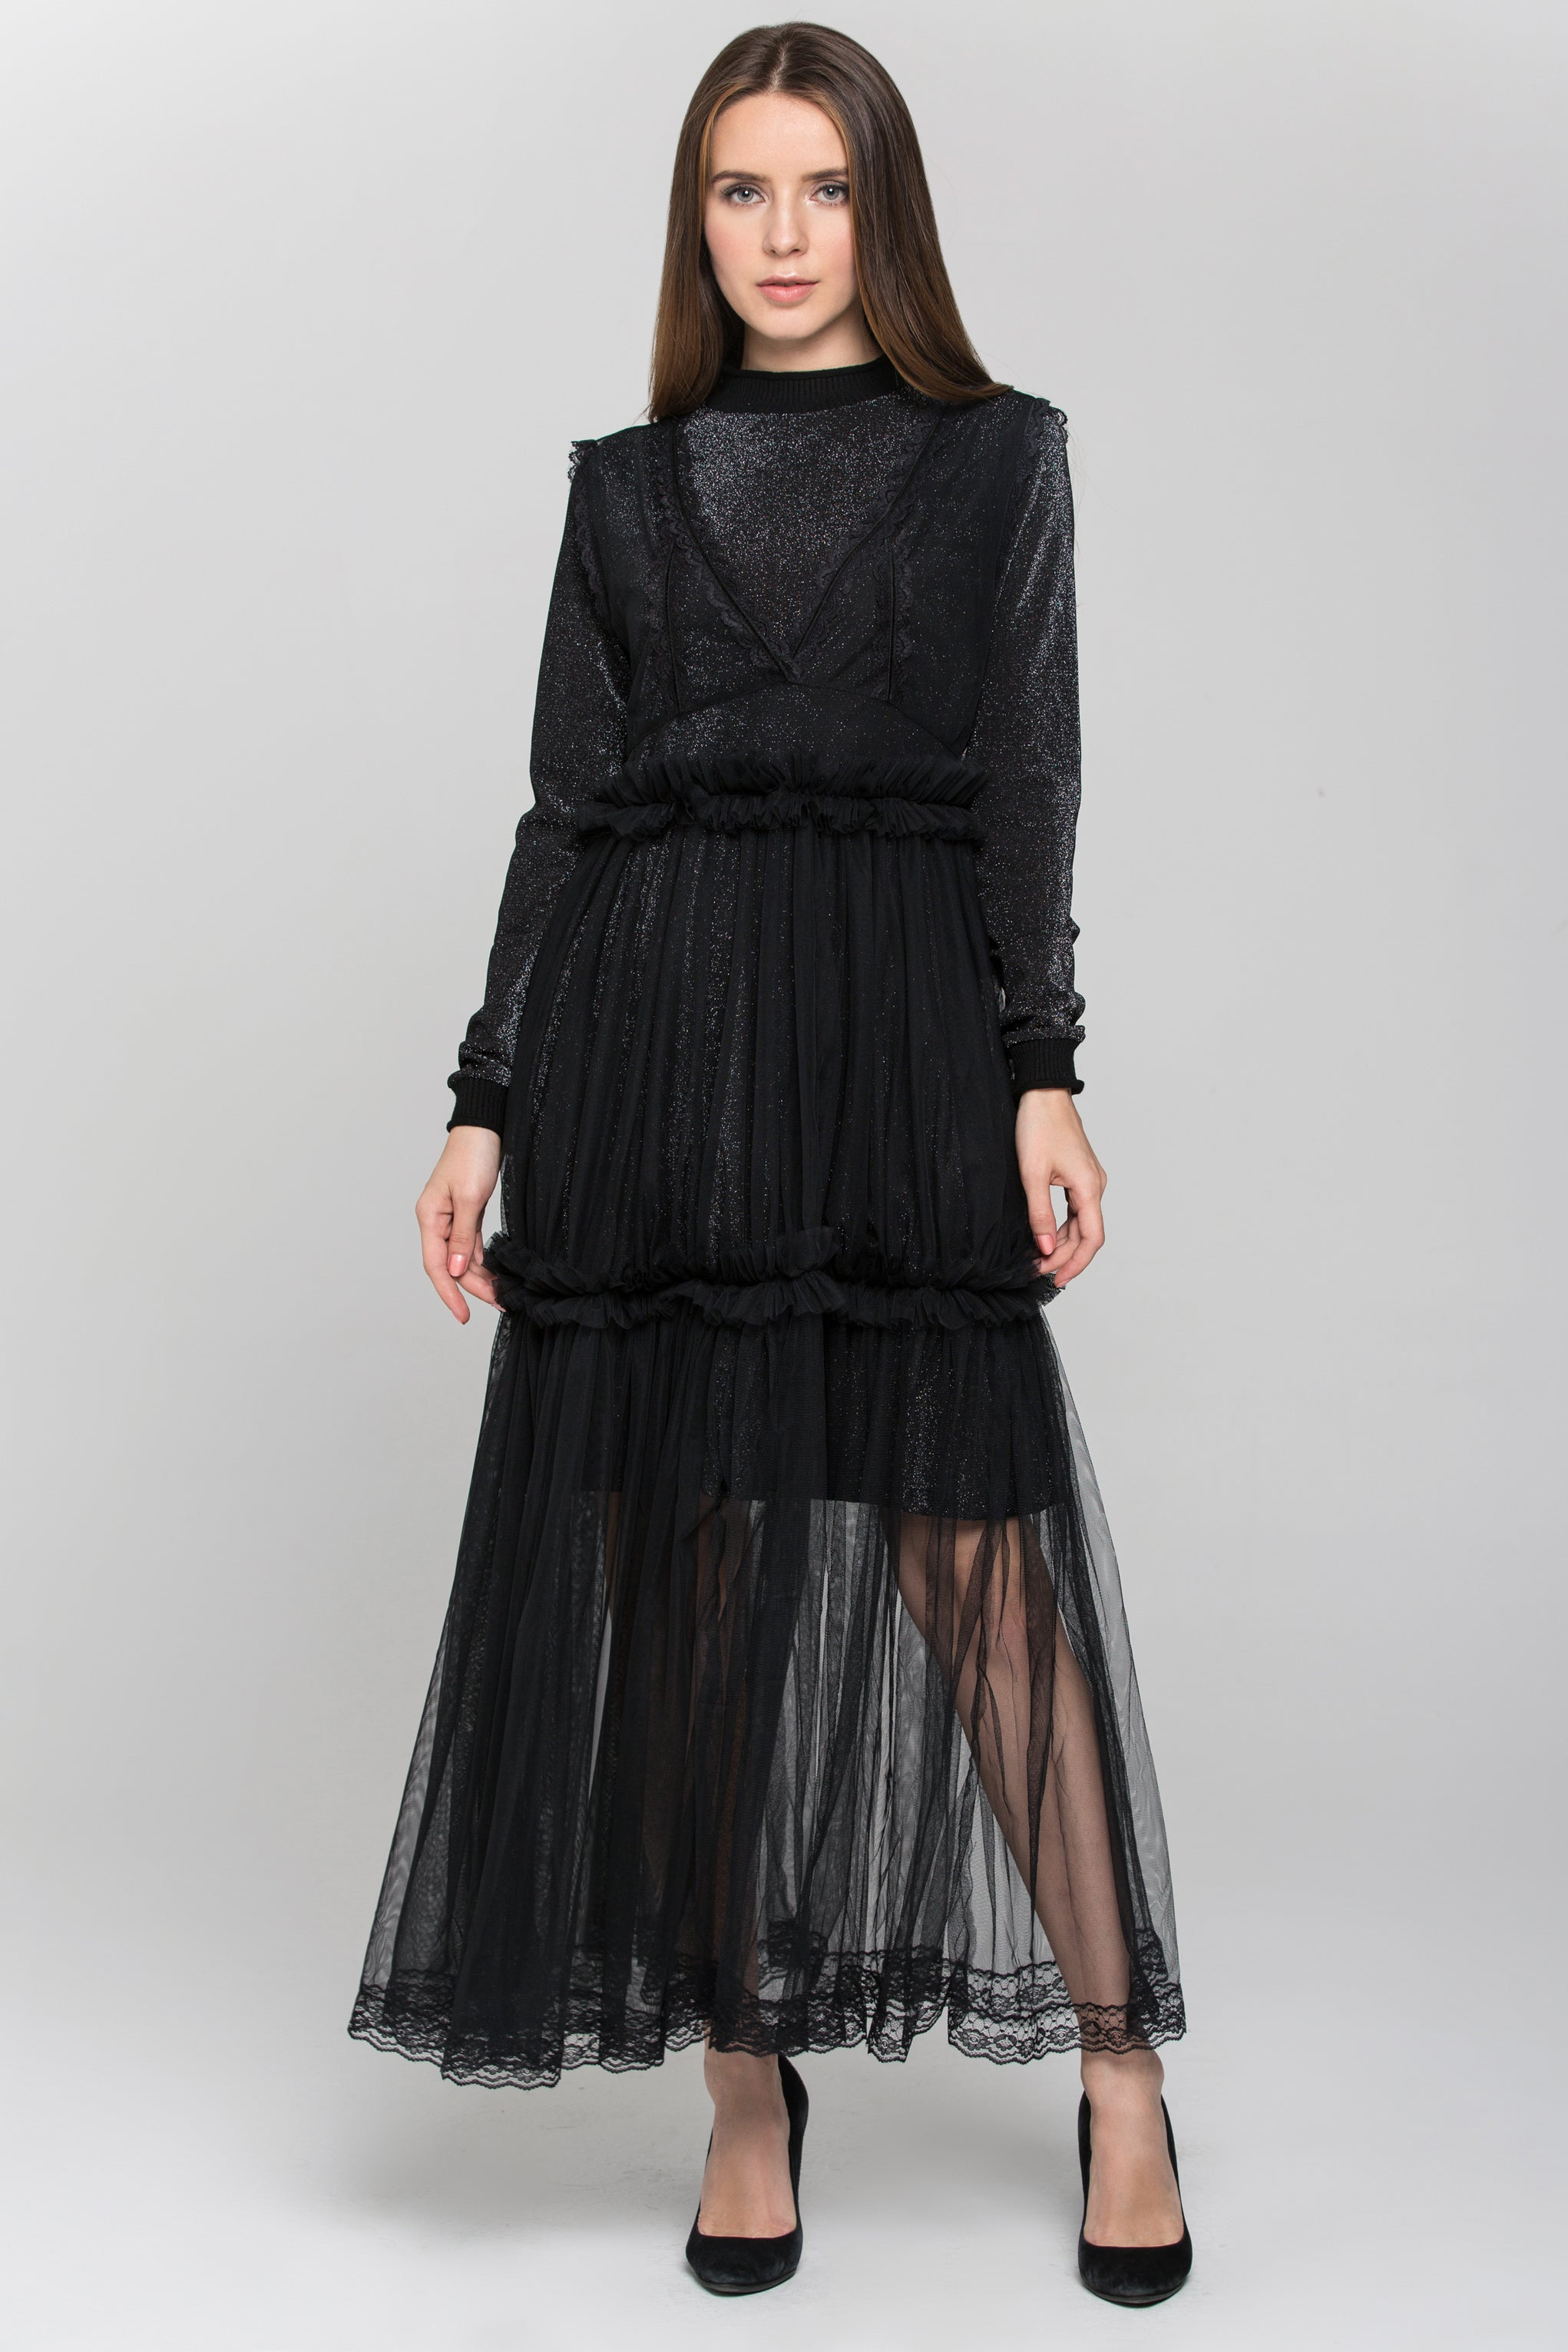 9d81a28c1088d Black Glitter Lace Tiered Soft Tulle Midi Dress – OwnTheLooks